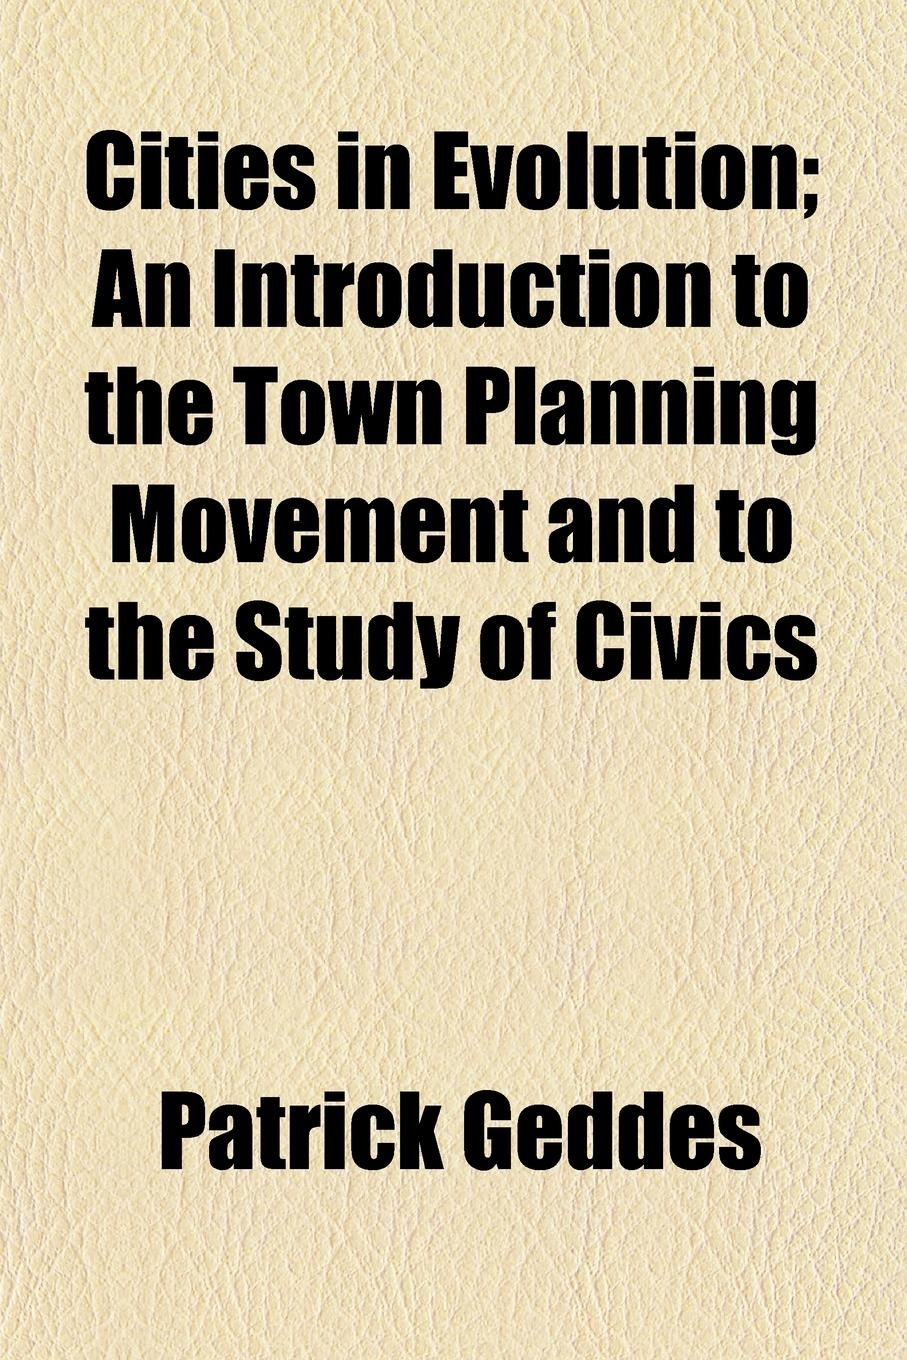 Patrick Geddes Cities in Evolution; An Introduction to the Town Planning Movement and to the Study of Civics free shipping kayipht cm400ha1 24h can directly buy or contact the seller